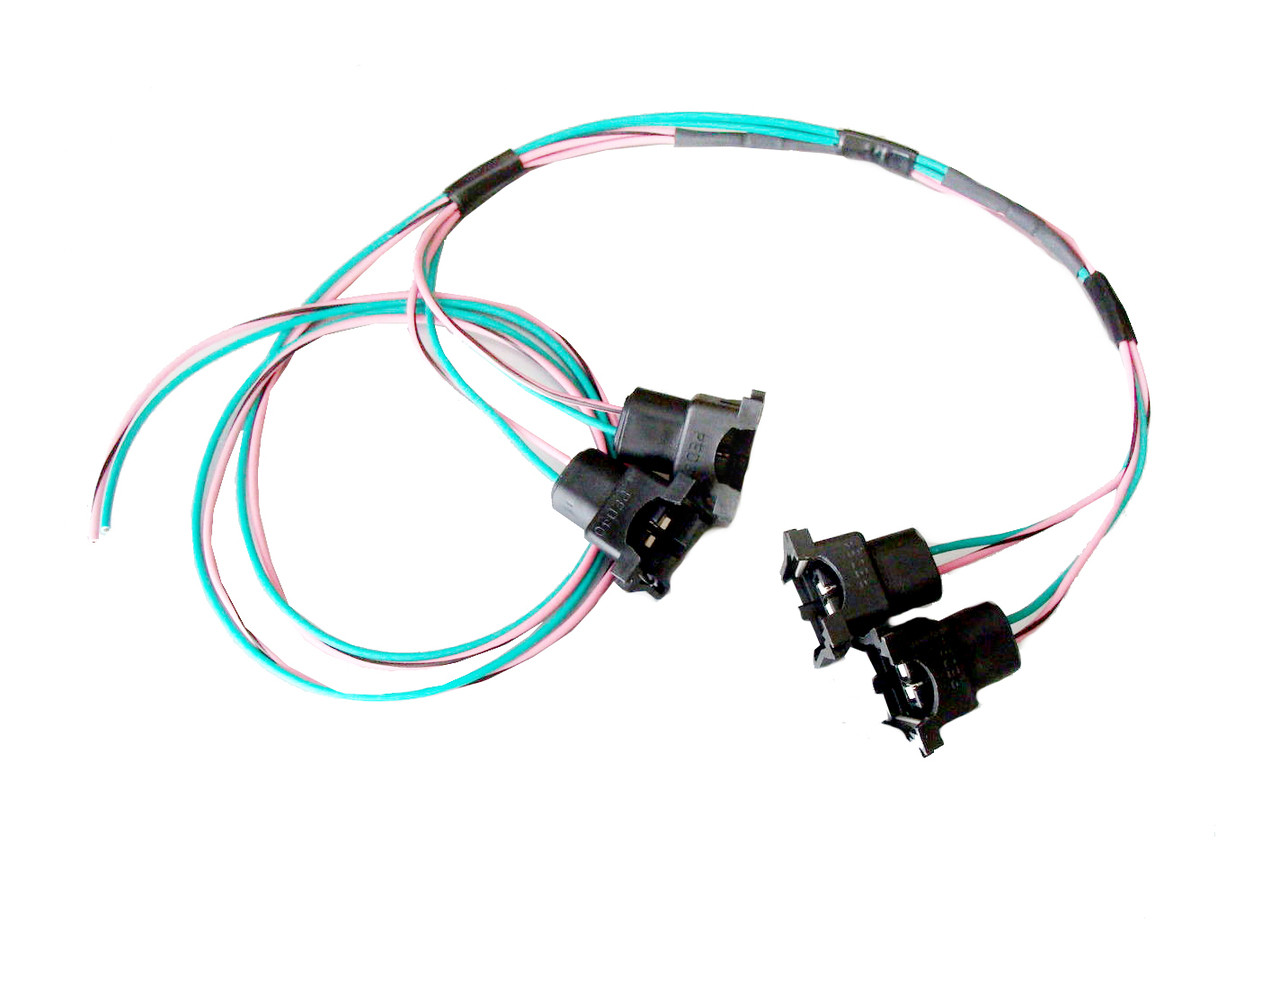 lt1 fuel injector connector wiring harness assembly lh  image 1